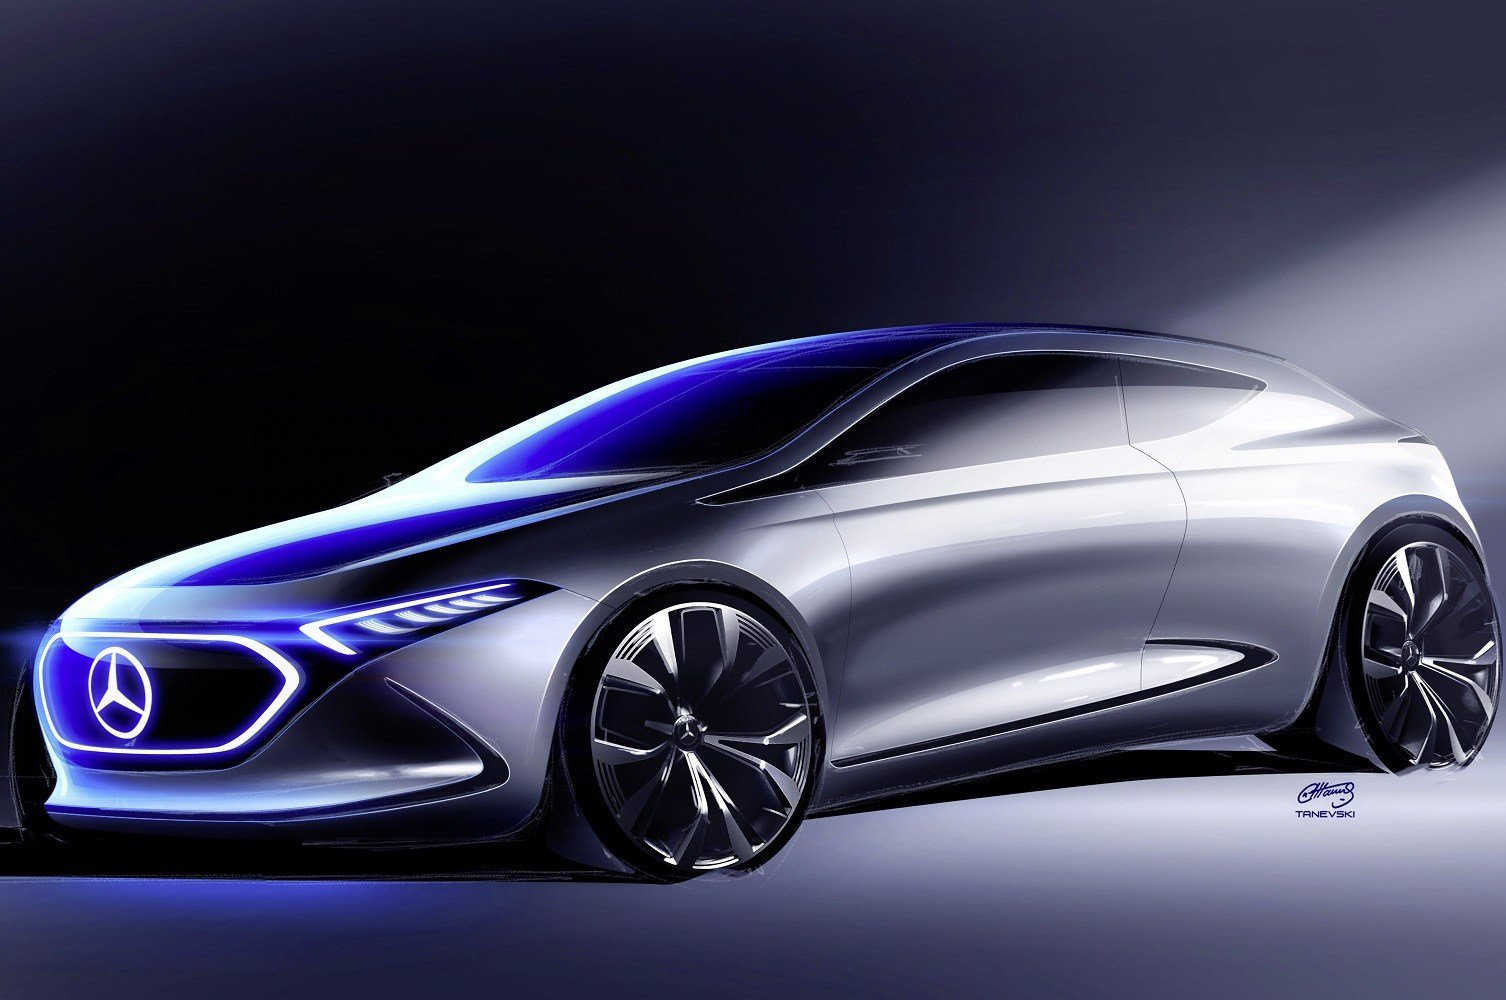 Latest The Mercedes Benz Concept Eqa Will Electrify The Show Free Download